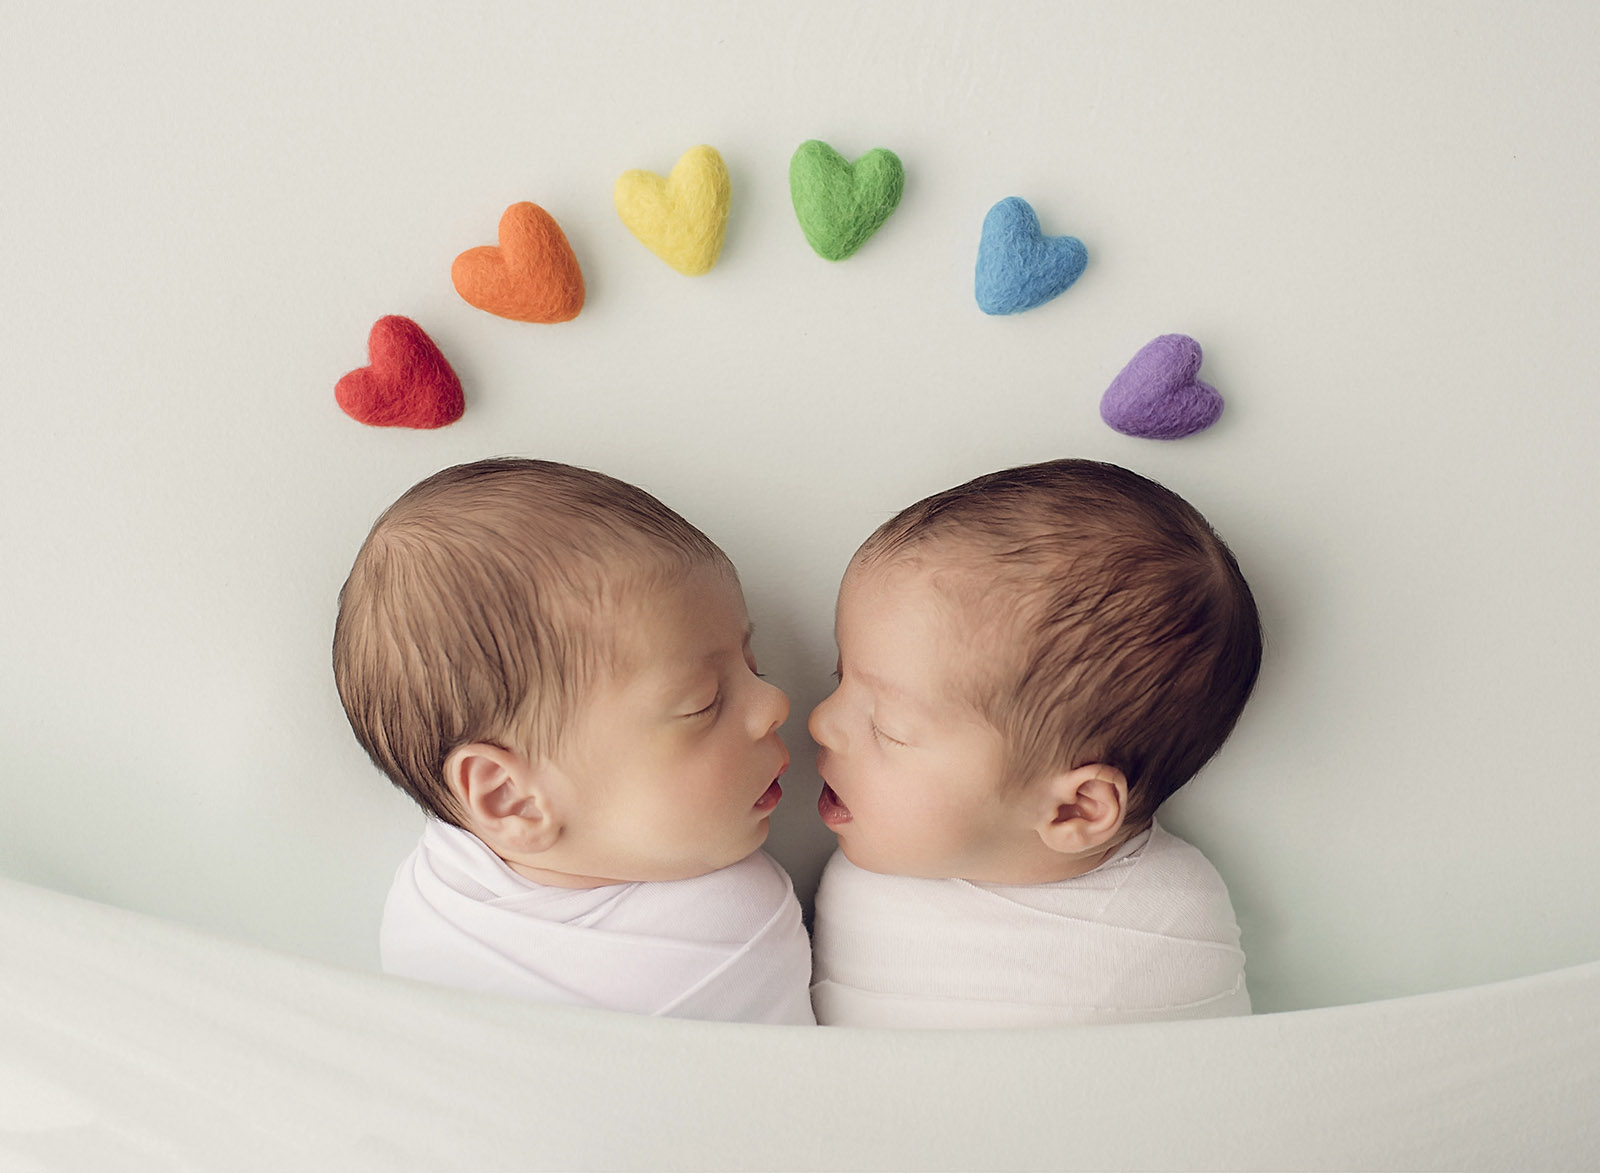 Rainbow baby photos of twins with colorful hearts